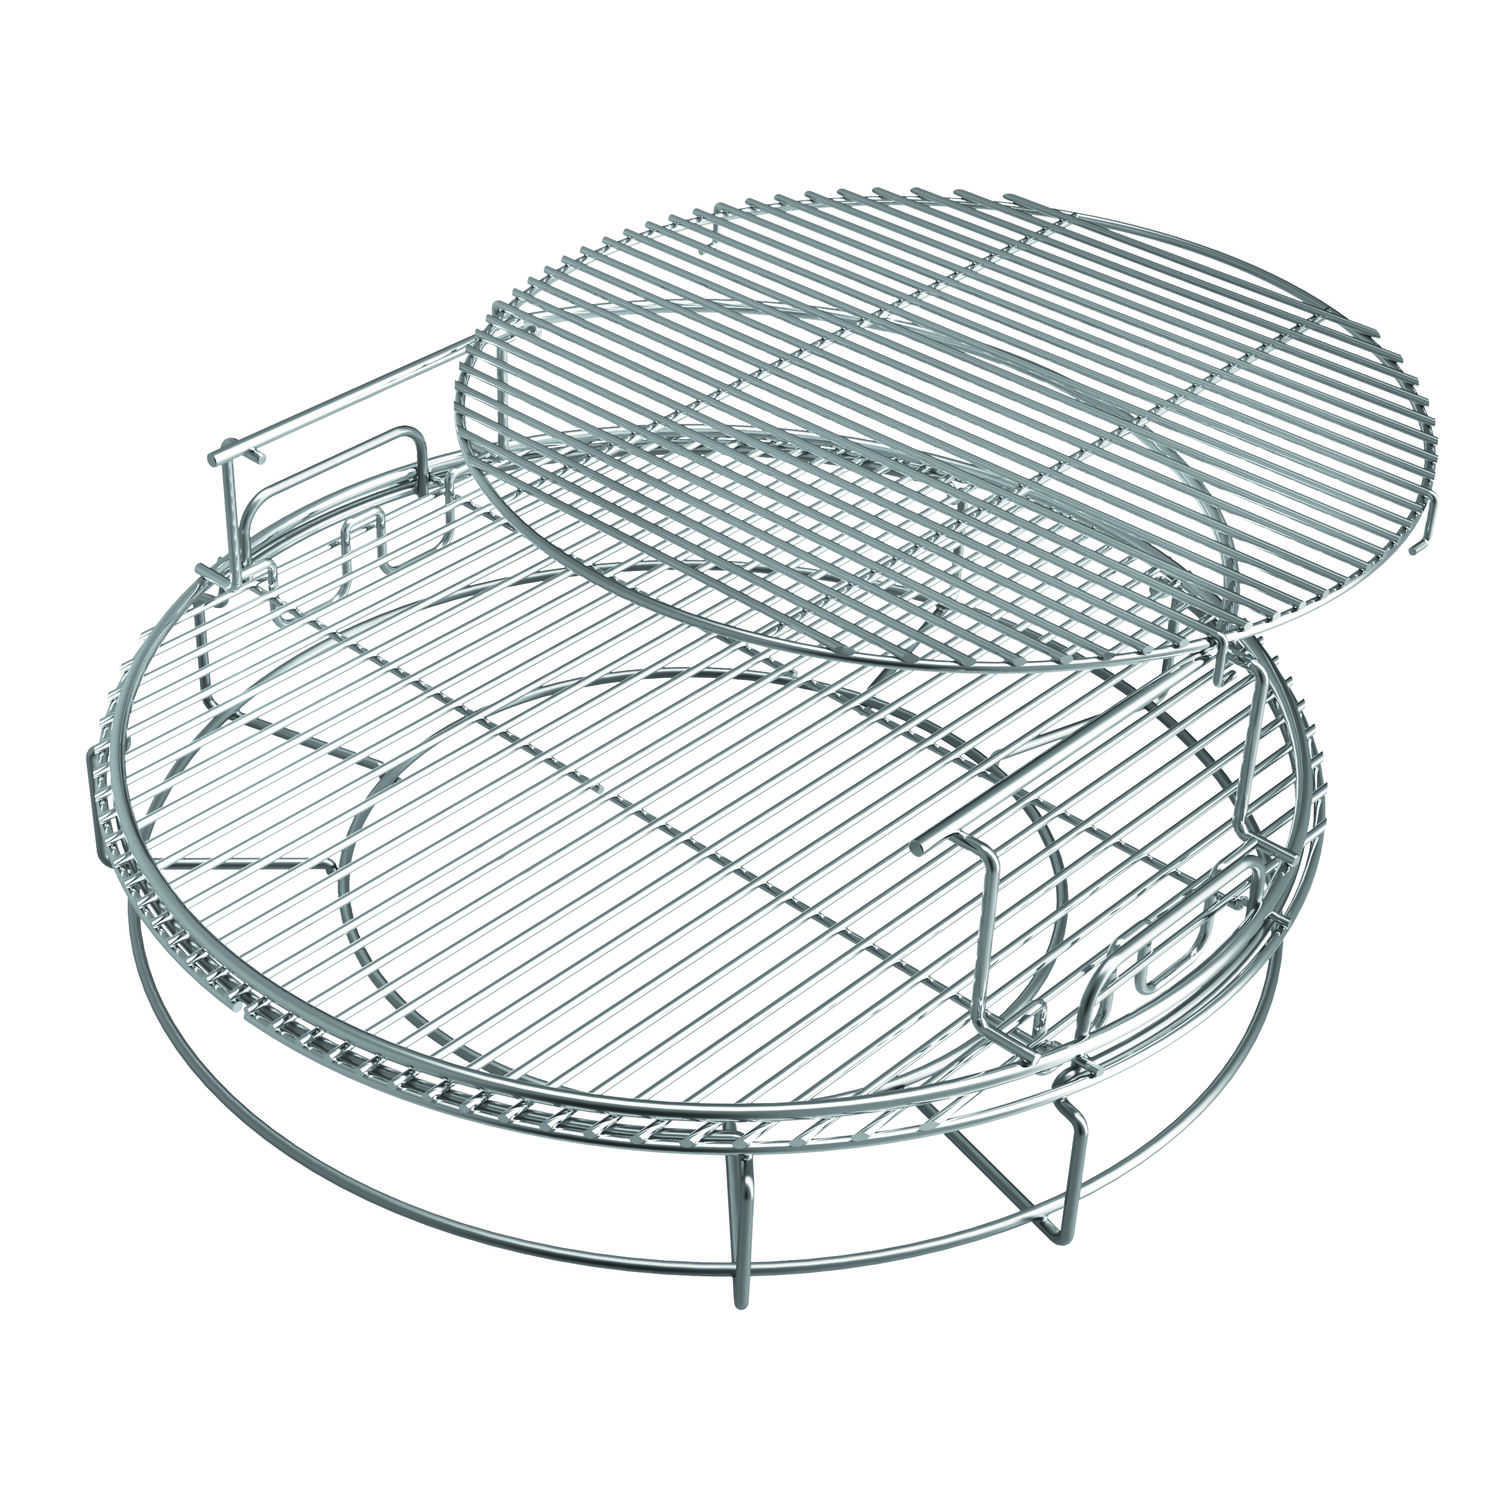 Grill Grates/Grids